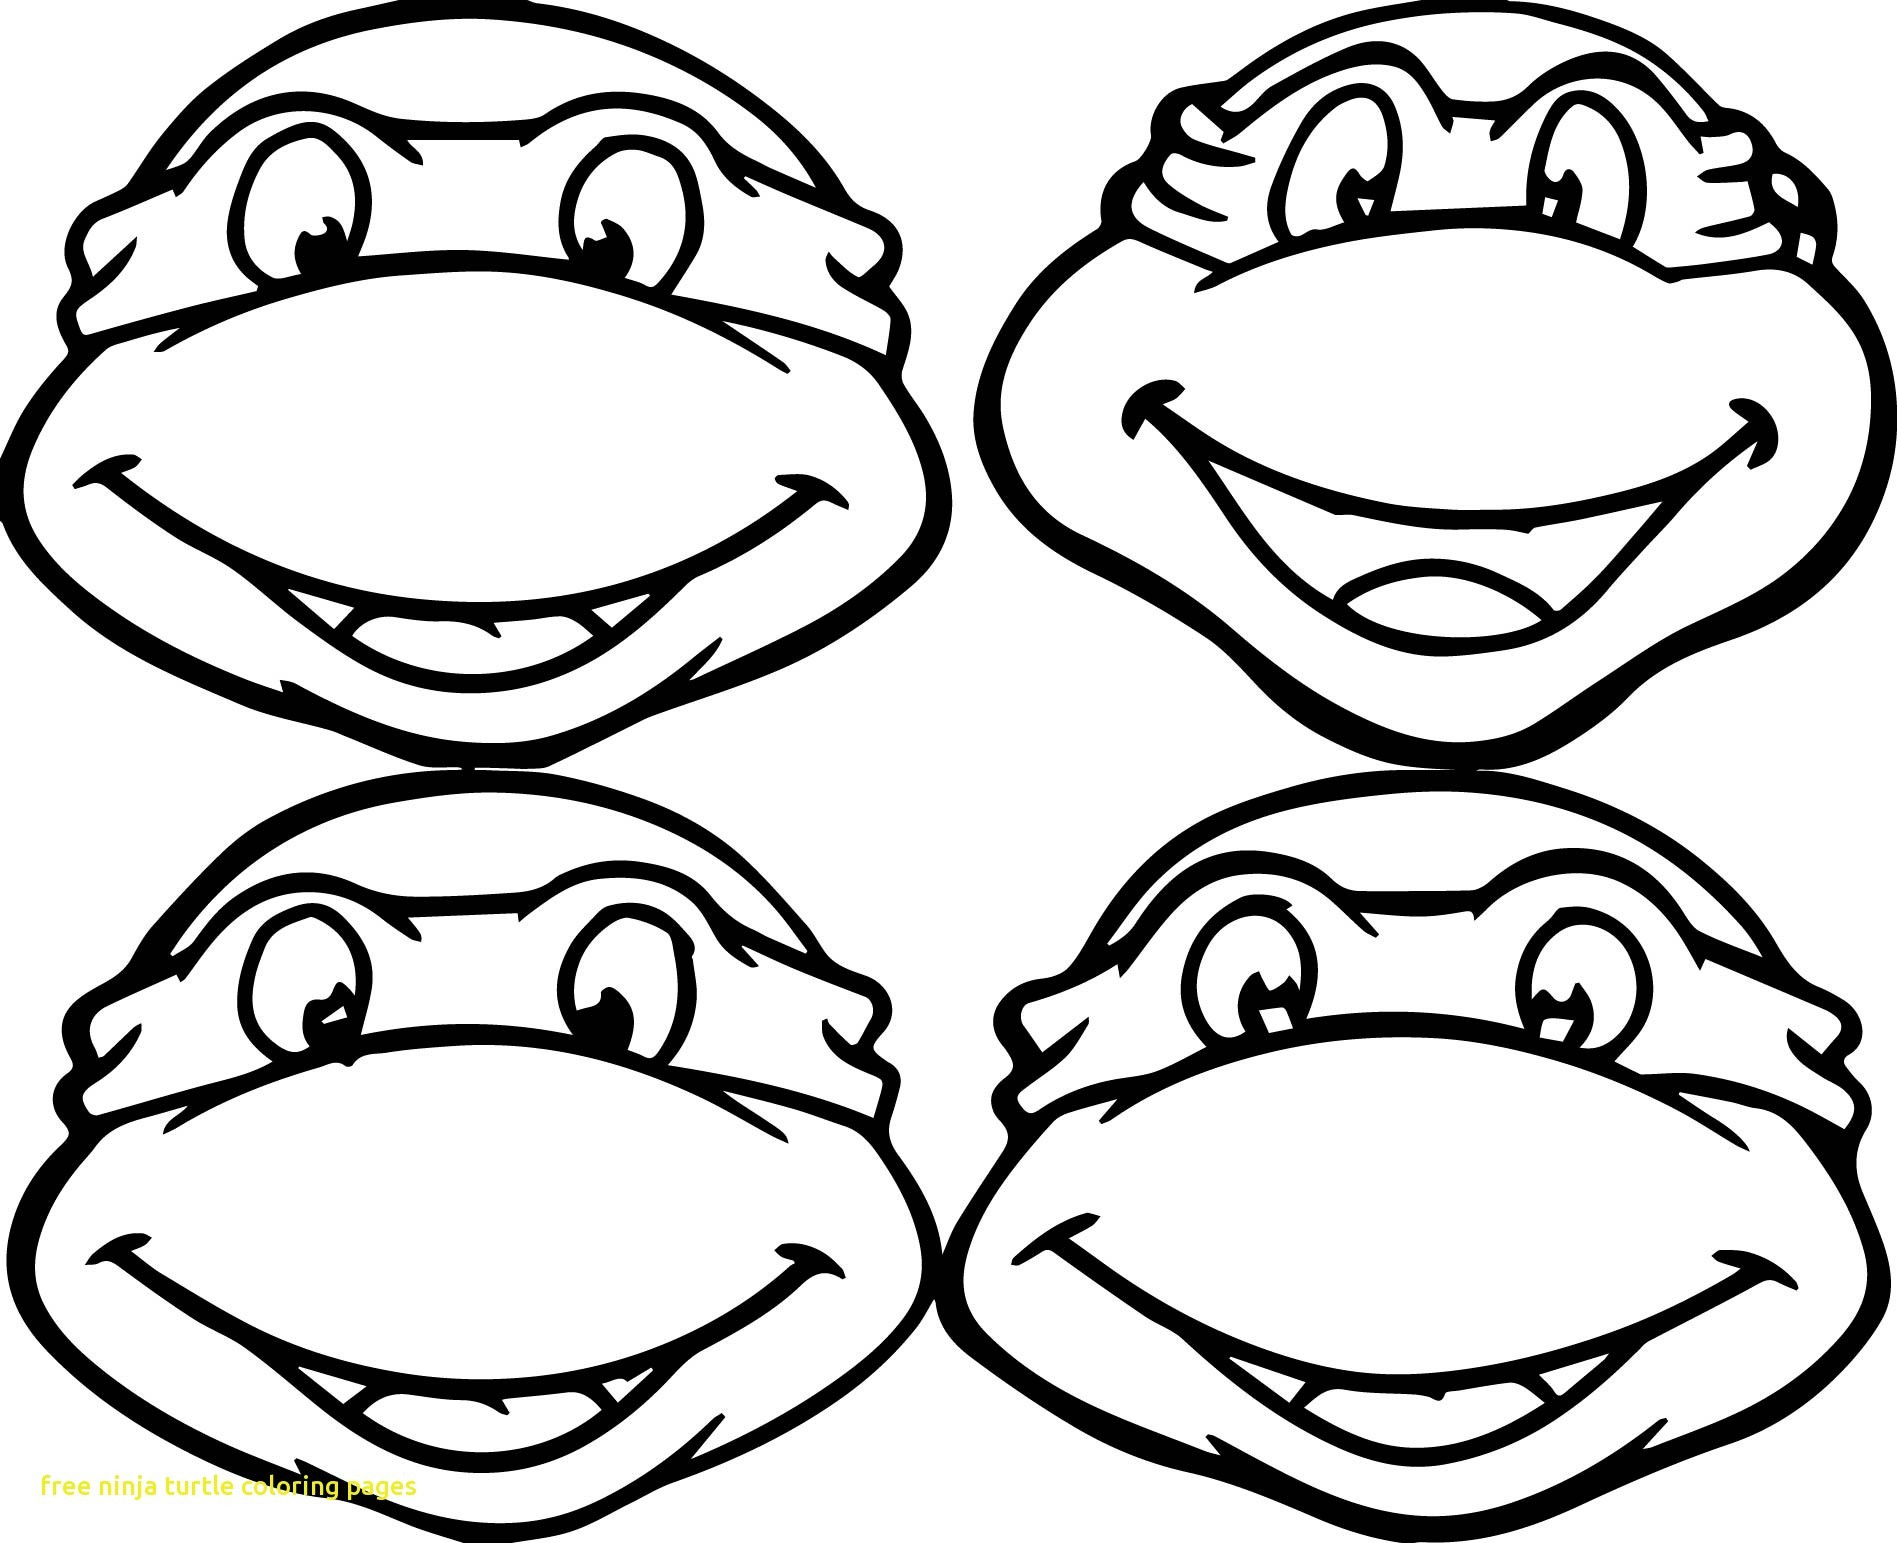 turtle printable coloring pages detailed turtle coloring pages at getcoloringscom free turtle pages printable coloring